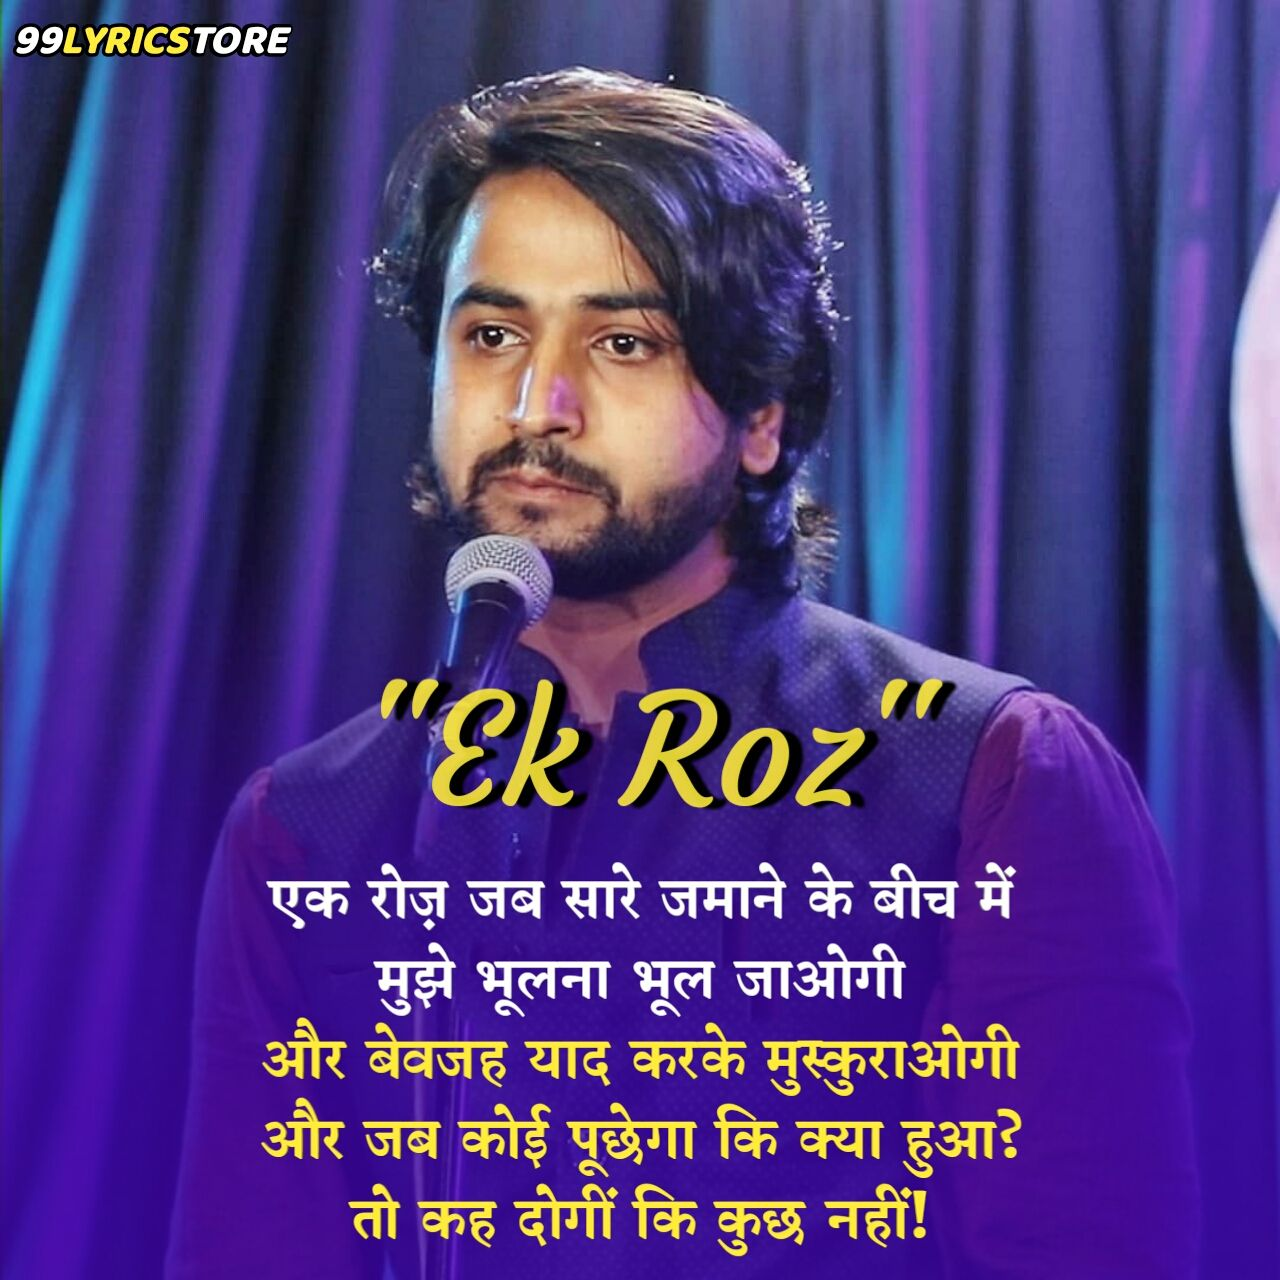 This Love Poem 'Ek Roz' has Written and performed by Dushyant Singh. Shot at Cuckoo Club Bandra.